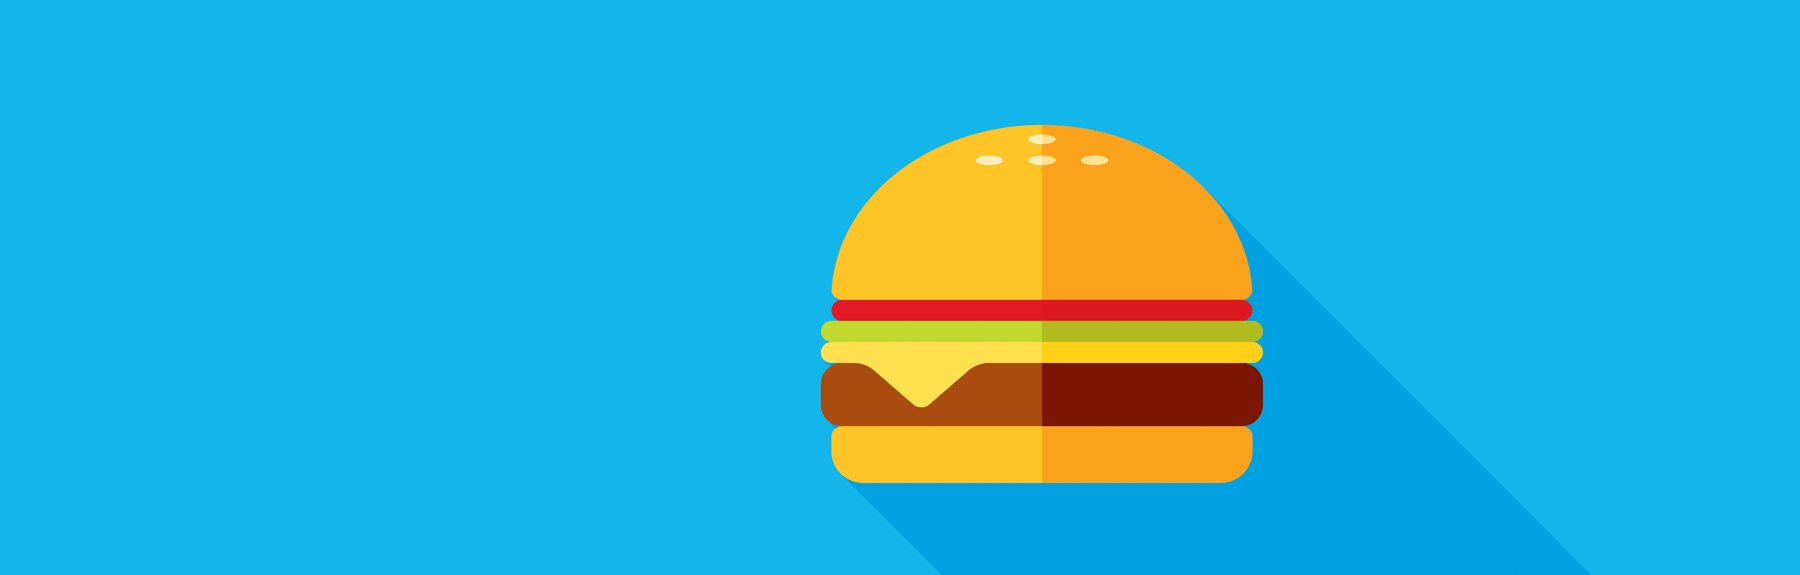 hamburger-menu-hamburger-icon-alternative-navigation-pattern-ui-header